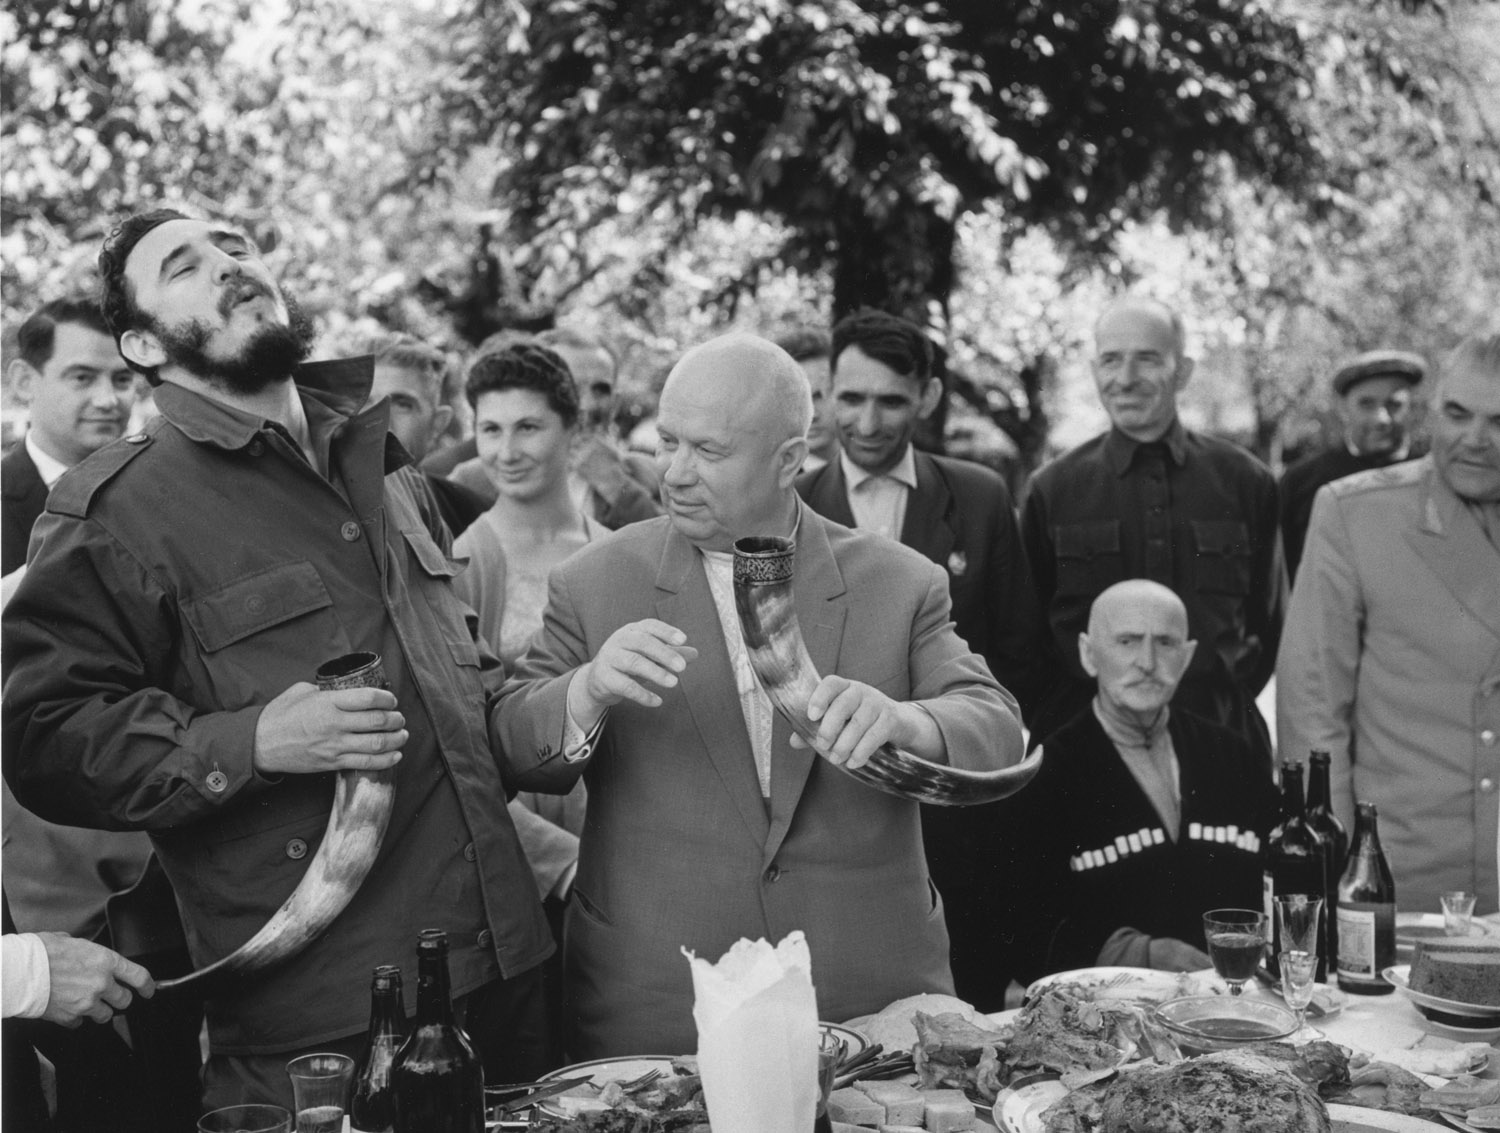 khrushchev and castro at lunch